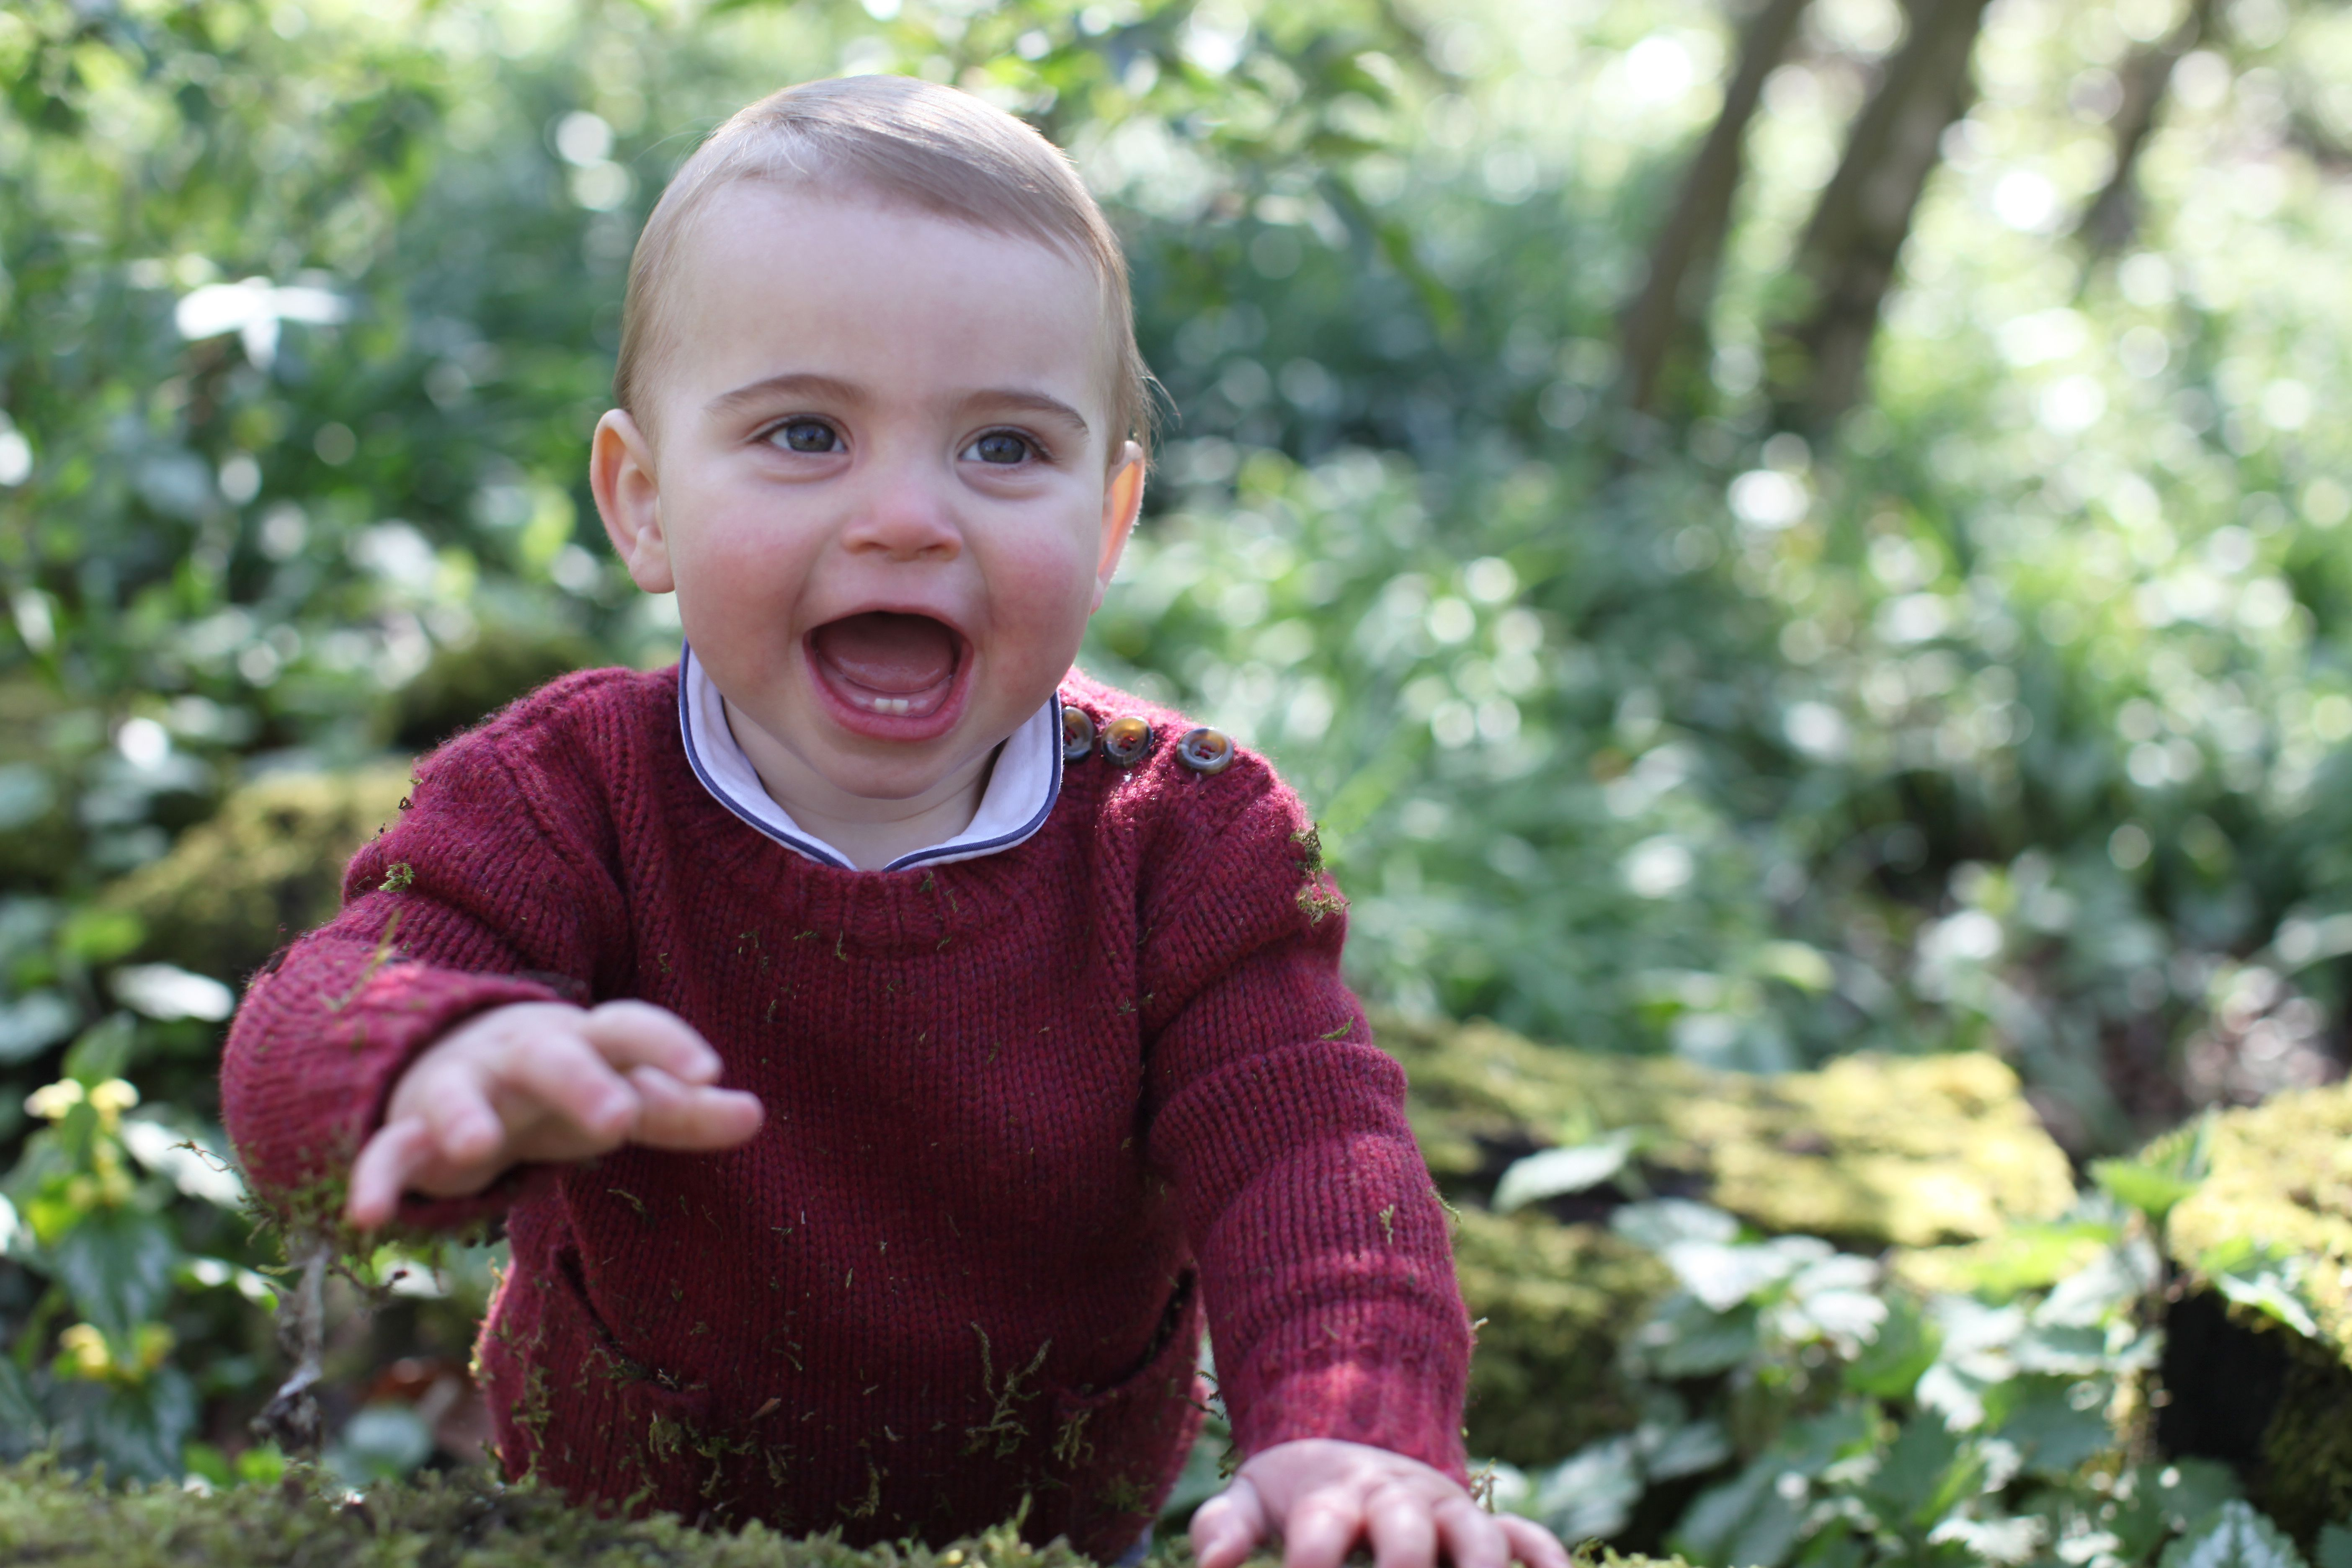 Please see supplementary info for special instructionsMandatory Credit: Photo by REX/Shutterstock (10216423c)Handout photo of Prince Louis taken by his mother, Catherine Duchess of Cambridge, at their home in Norfolk earlier this month, to mark his first birthday on TuesdayPrince Louis, Norfolk, UK - 2019EMBARGOED TO 2230 MONDAY APRIL 22Copyright: HRH The Duchess of Cambridge 2018. NEWS EDITORIAL USE ONLY. NO COMMERCIAL USE. NO MERCHANDISING, ADVERTISING, SOUVENIRS, MEMORABILIA or COLOURABLY SIMILAR. NOT FOR USE AFTER 31 DECEMBER, 2019 WITHOUT PRIOR PERMISSION FROM KENSINGTON PALACE. This photograph is provided to you strictly on condition that you will make no charge for the supply, release or publication of it and that these conditions and restrictions will apply (and that you will pass these on) to any organisation to whom you supply it. There shall be no commercial use whatsoever of the photographs (including by way of example only) any use in merchandising, advertising or any other non-news editorial use. The photographs must not be digitally enhanced, manipulated or modified in any manner or form and must include all of the individuals in the photograph when published. All other requests for use should be directed to the Press Office at Kensington Palace in writing.